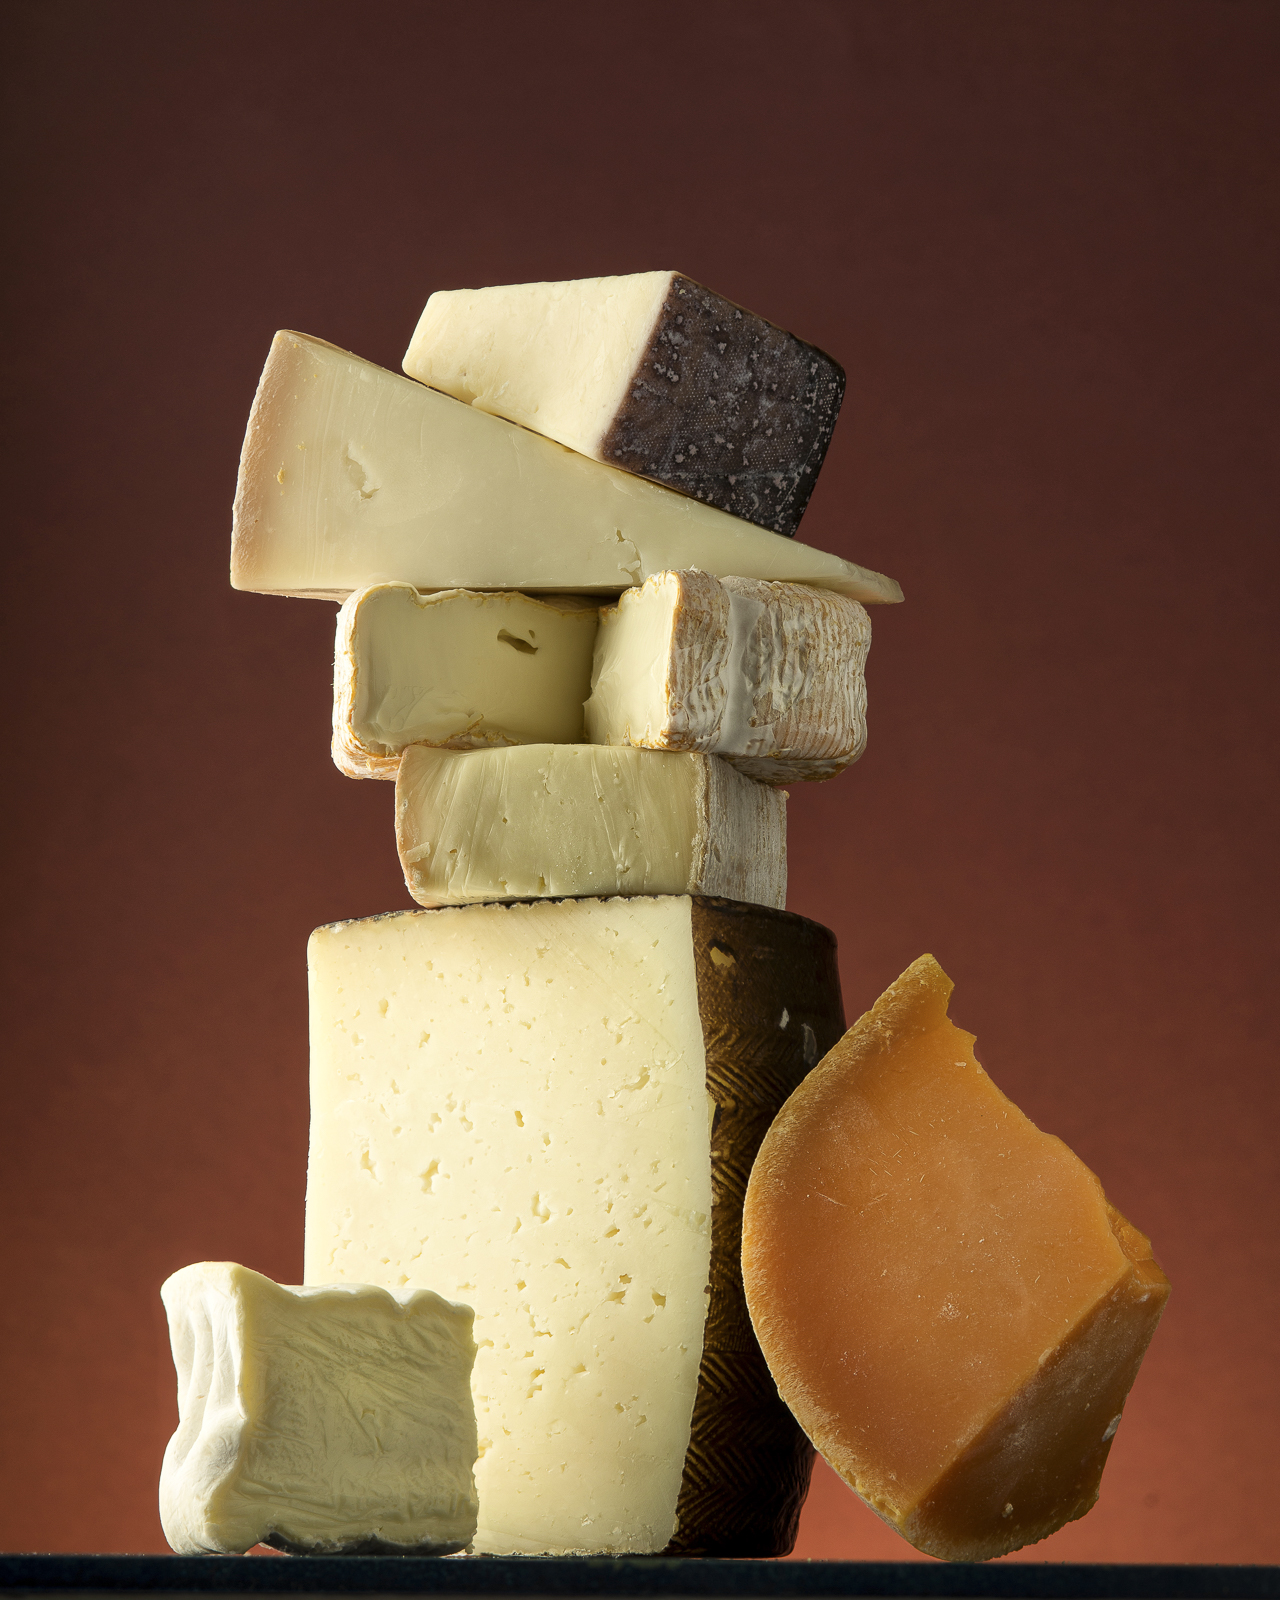 Seven Cheeses Stack